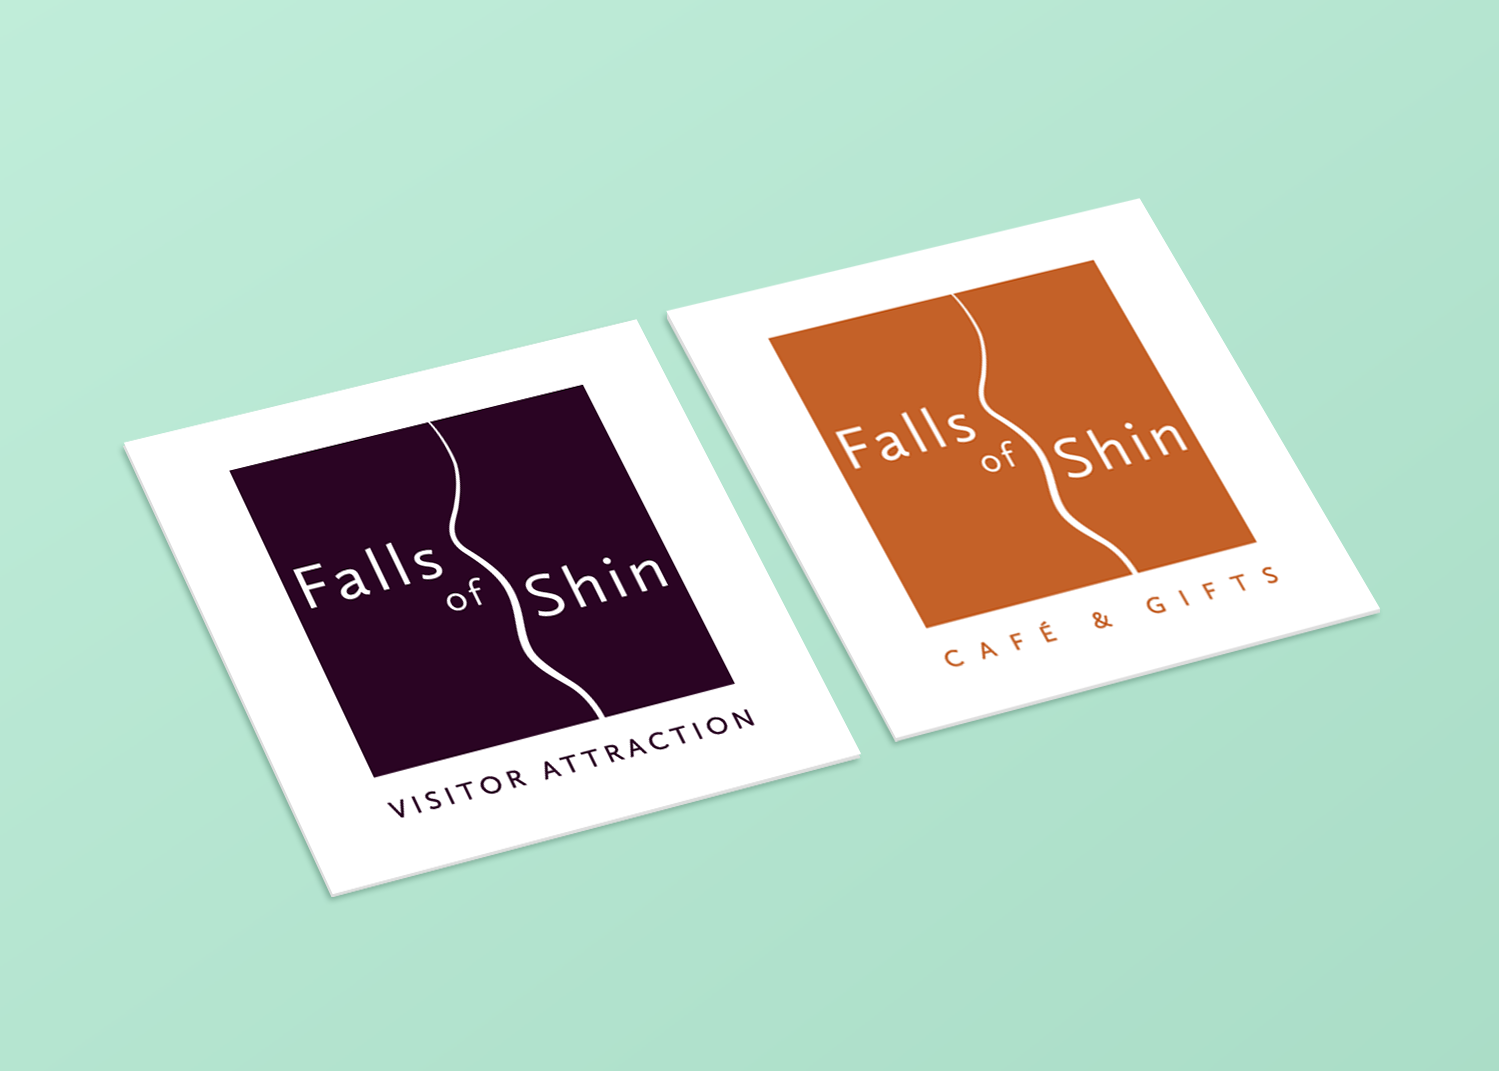 Falls of Shin Visitor Attraction and Cafe & Gifts Logos